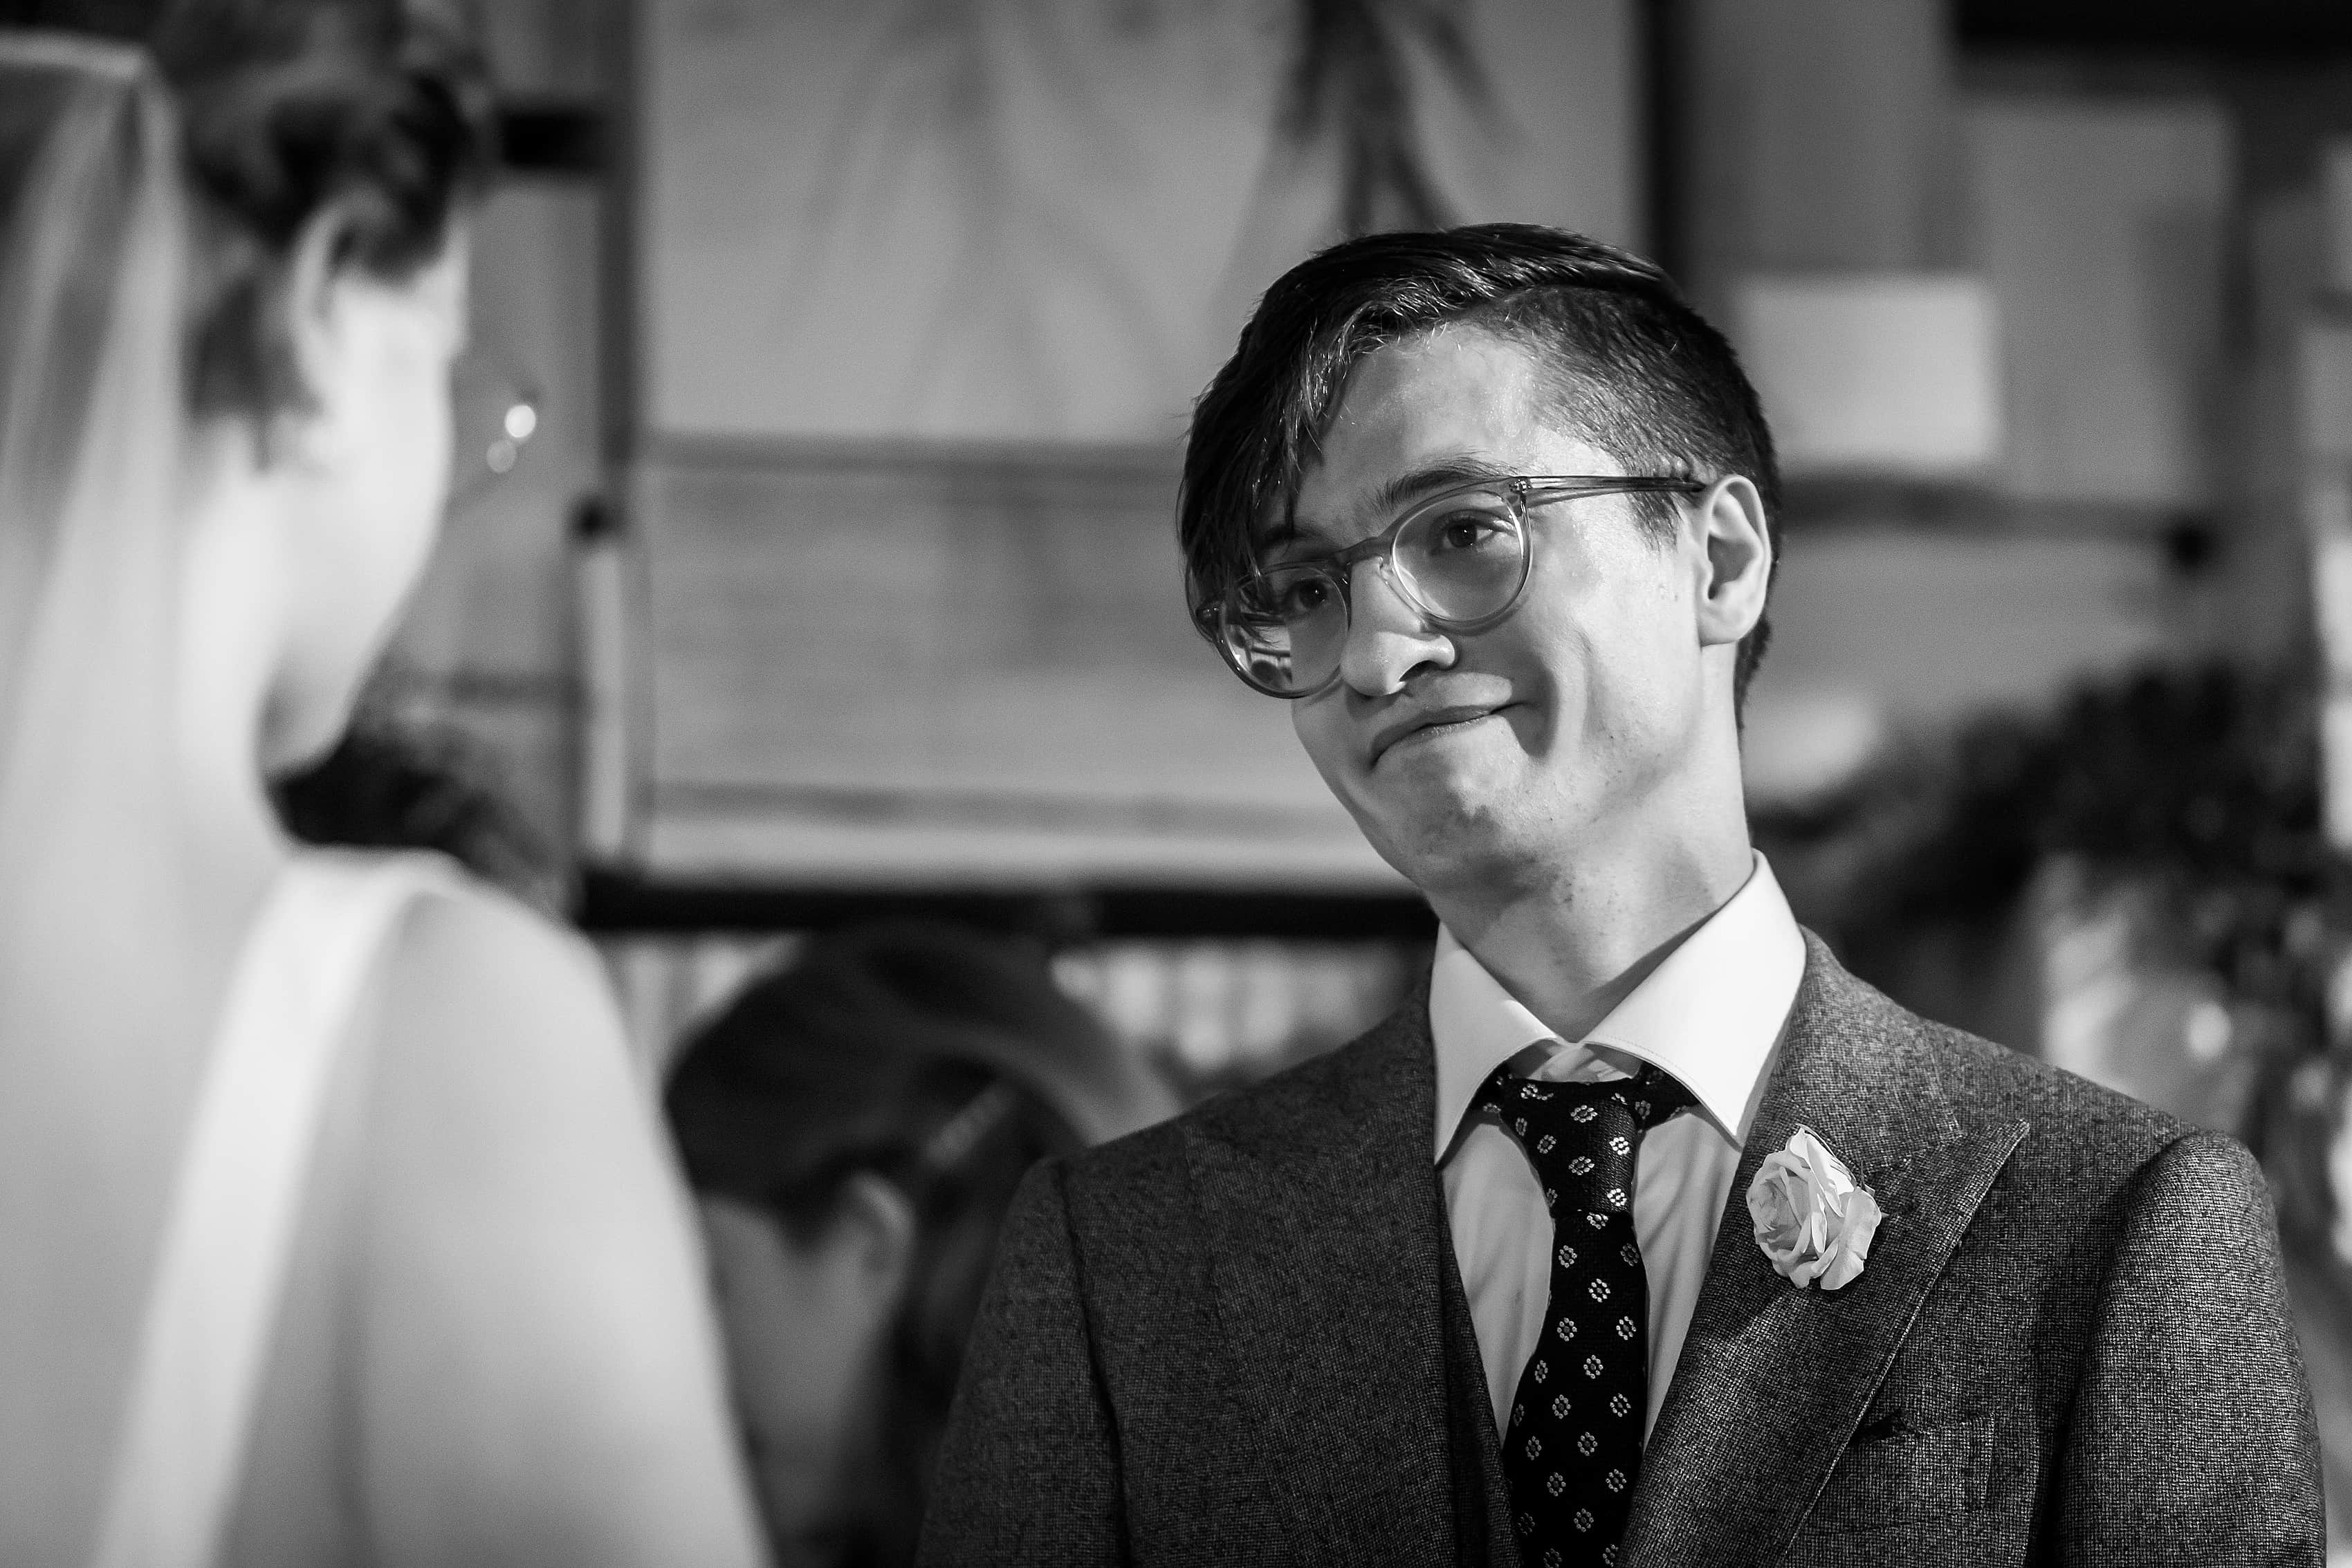 groom reaction during wedding ceremony at Rust Belt Market in downtown Ferndale, Michigan